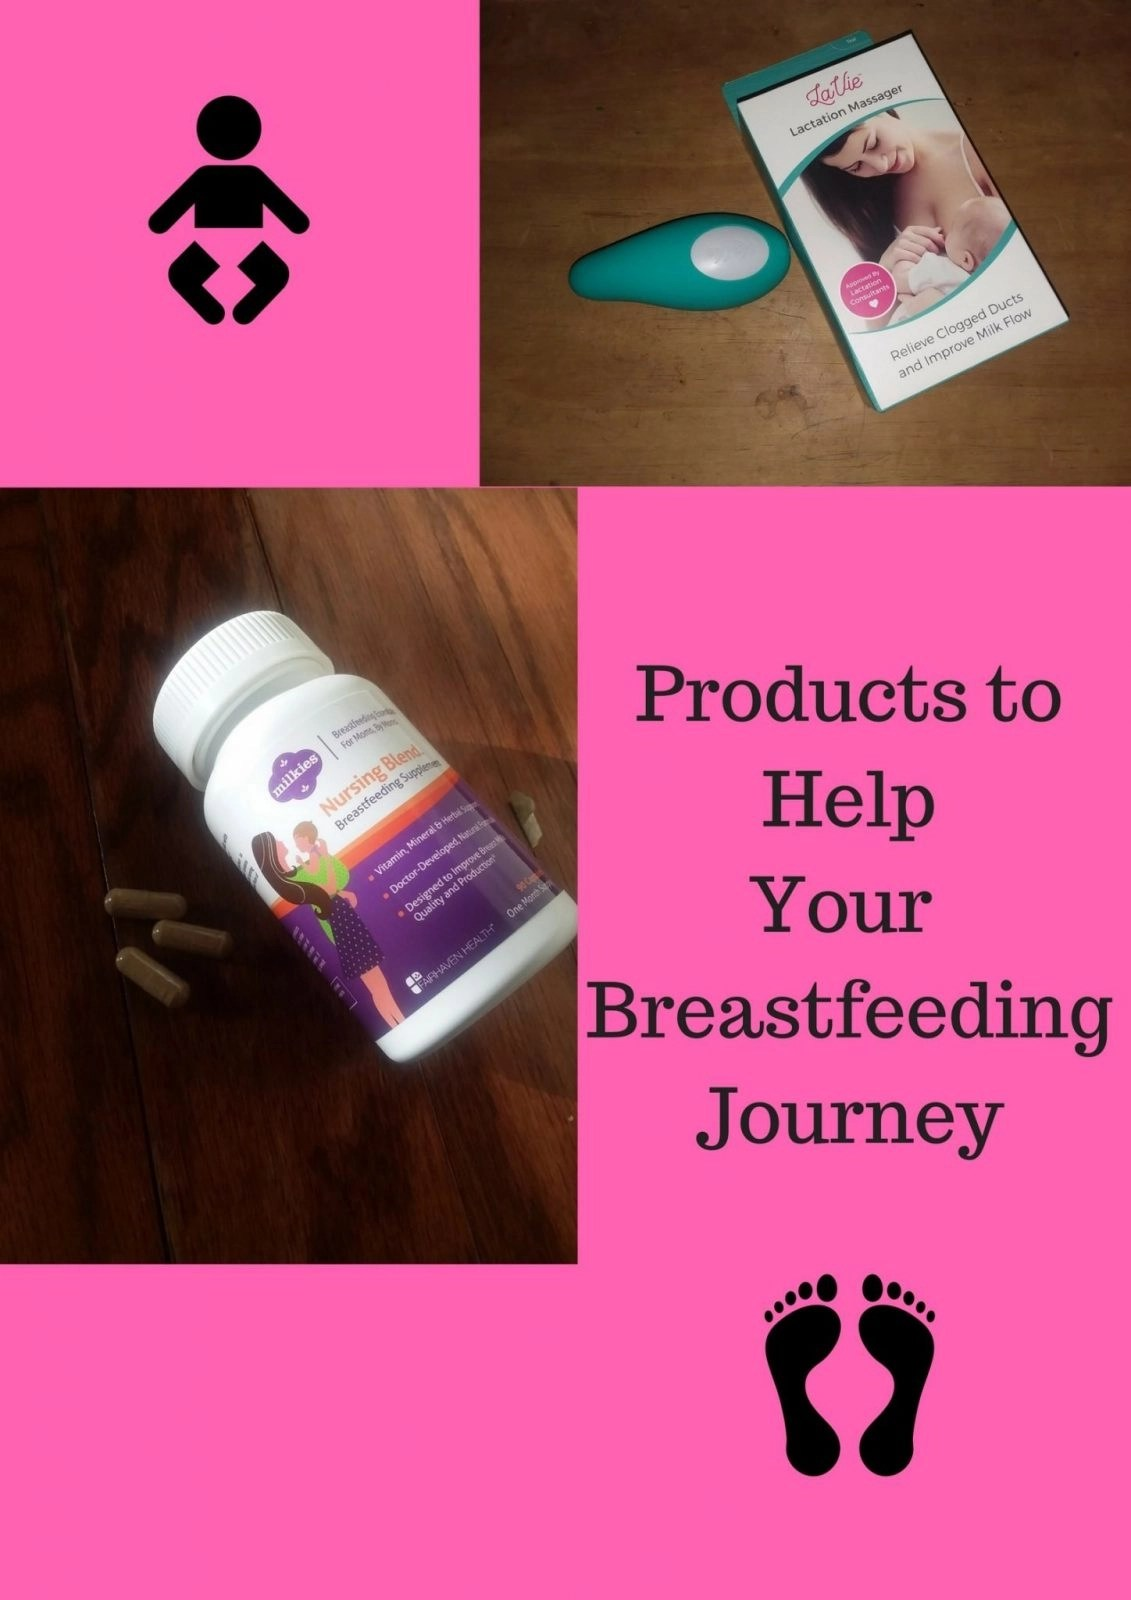 Products to Help Your Breastfeeding Journey - Milkies- Nursing Blend Breasfeeding Supplement - Lactation Massager by LaVie